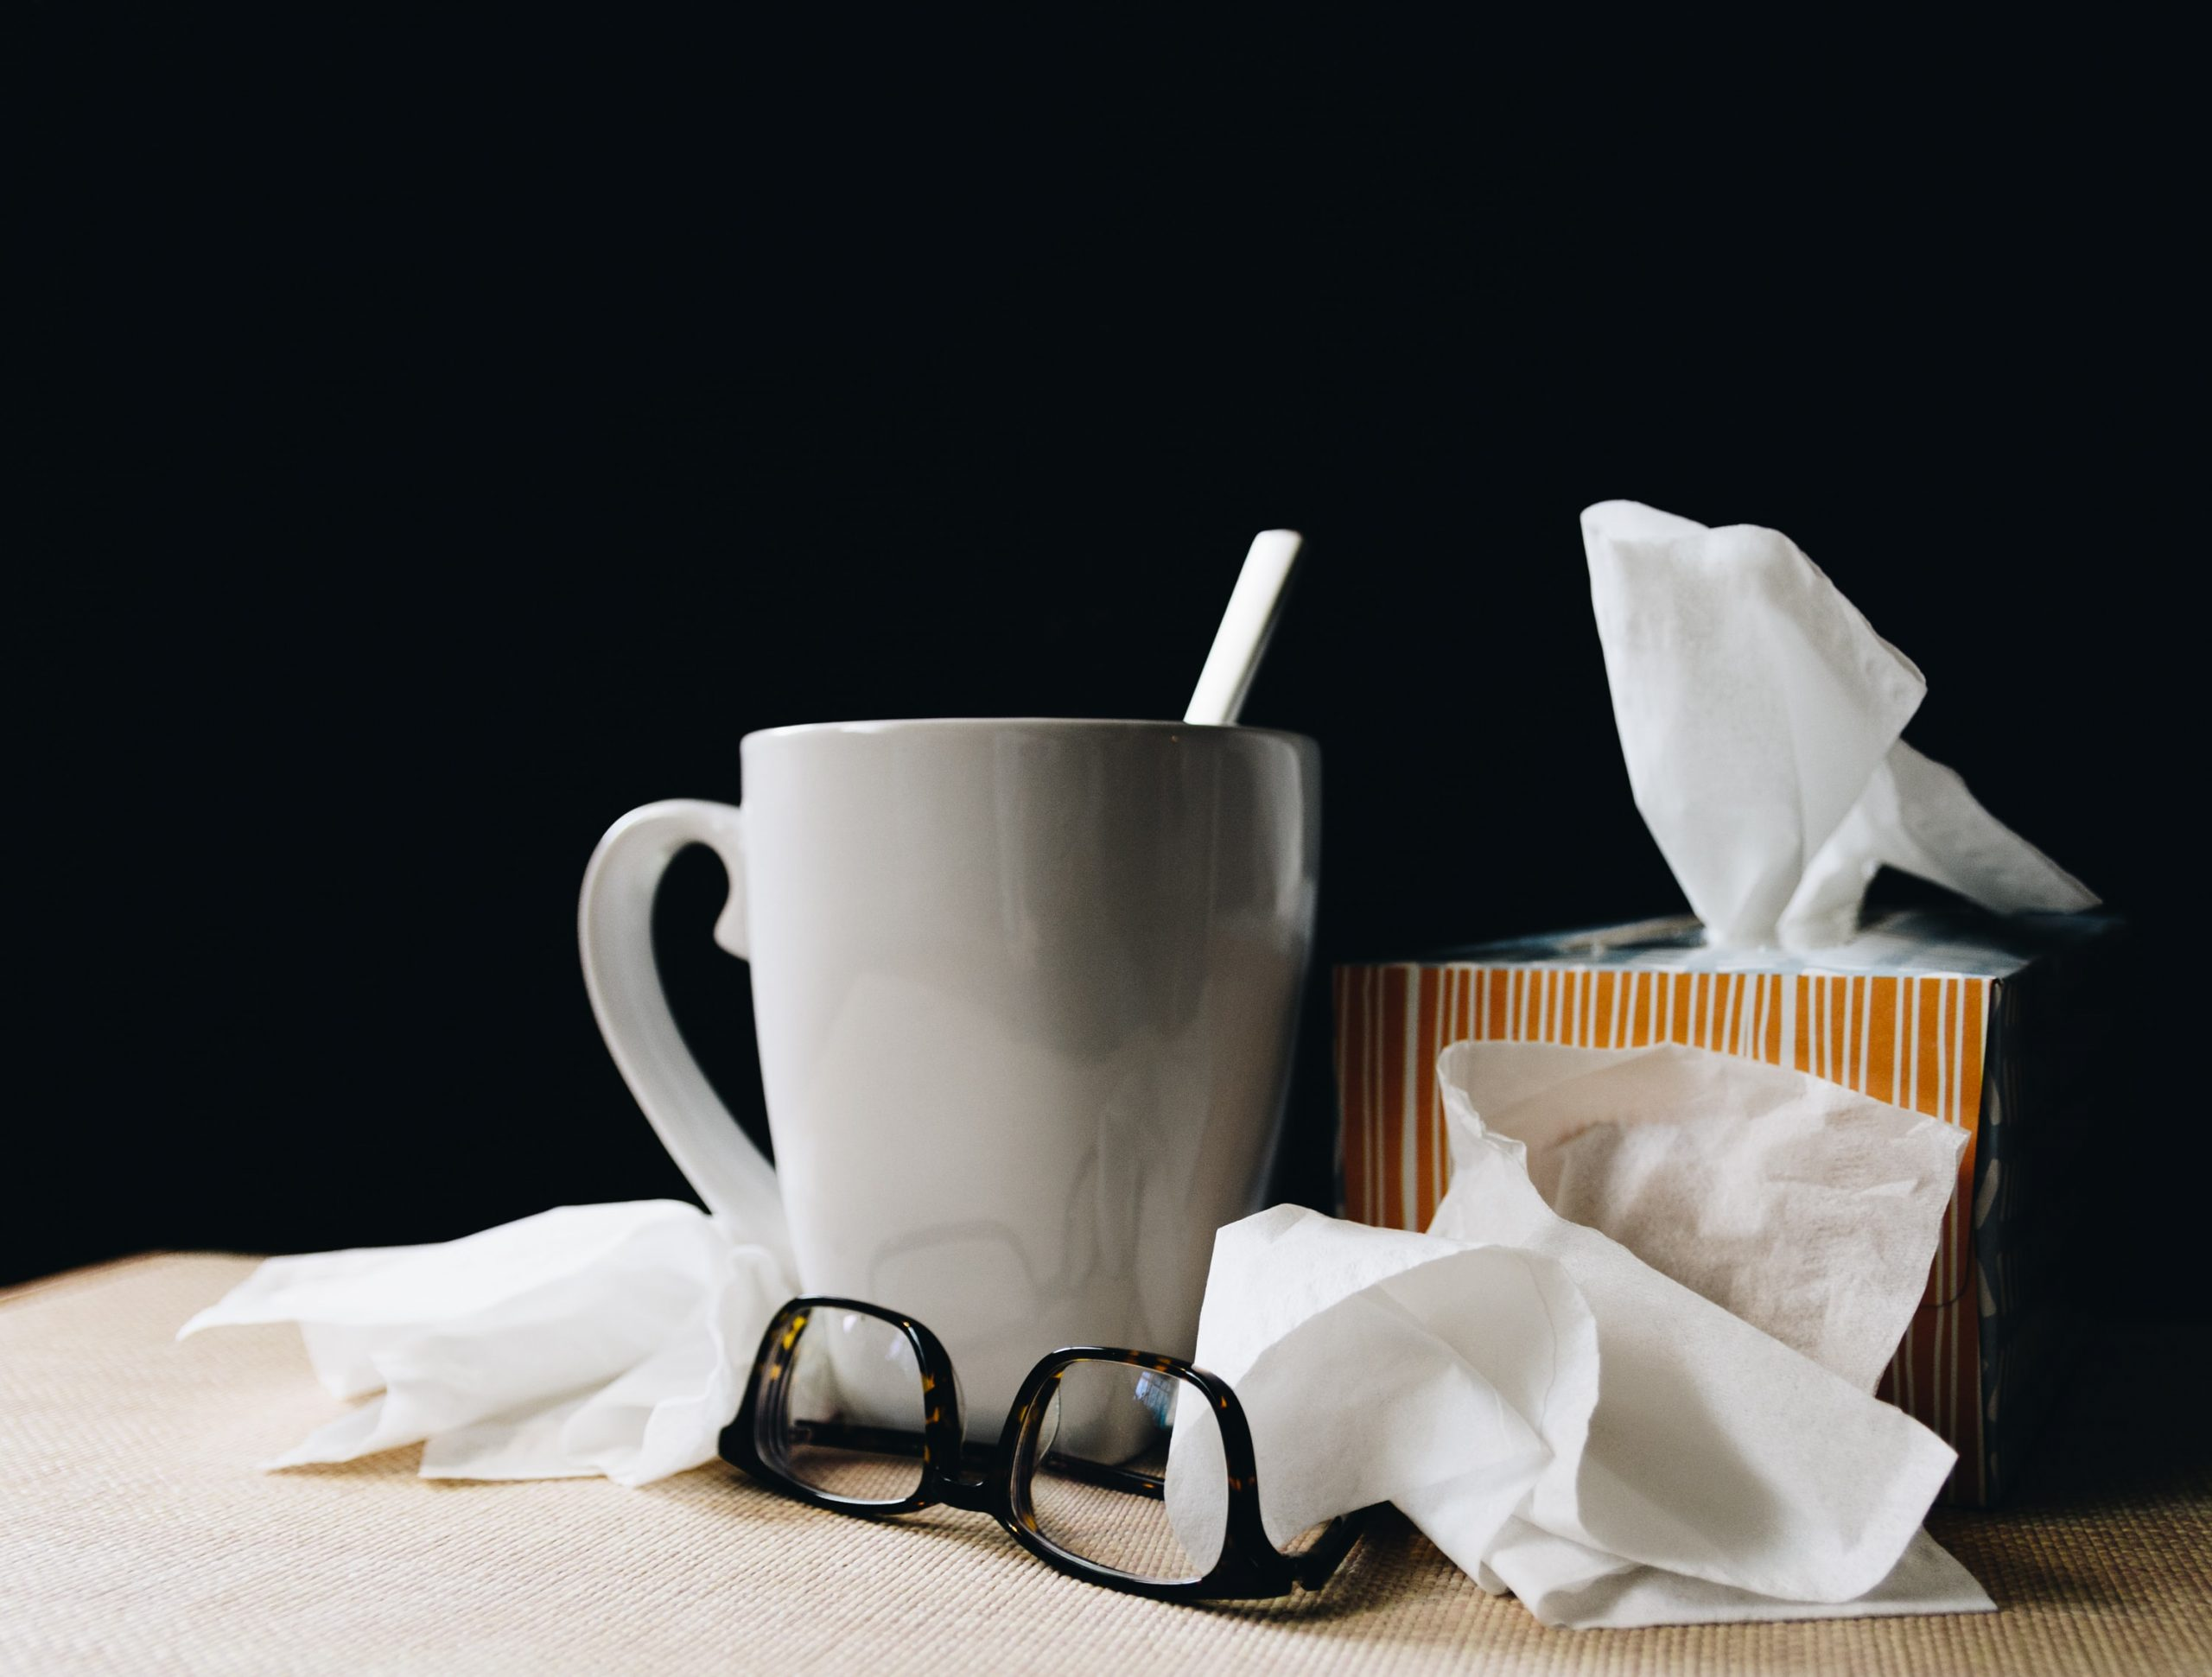 Tissues used by person who has a cold